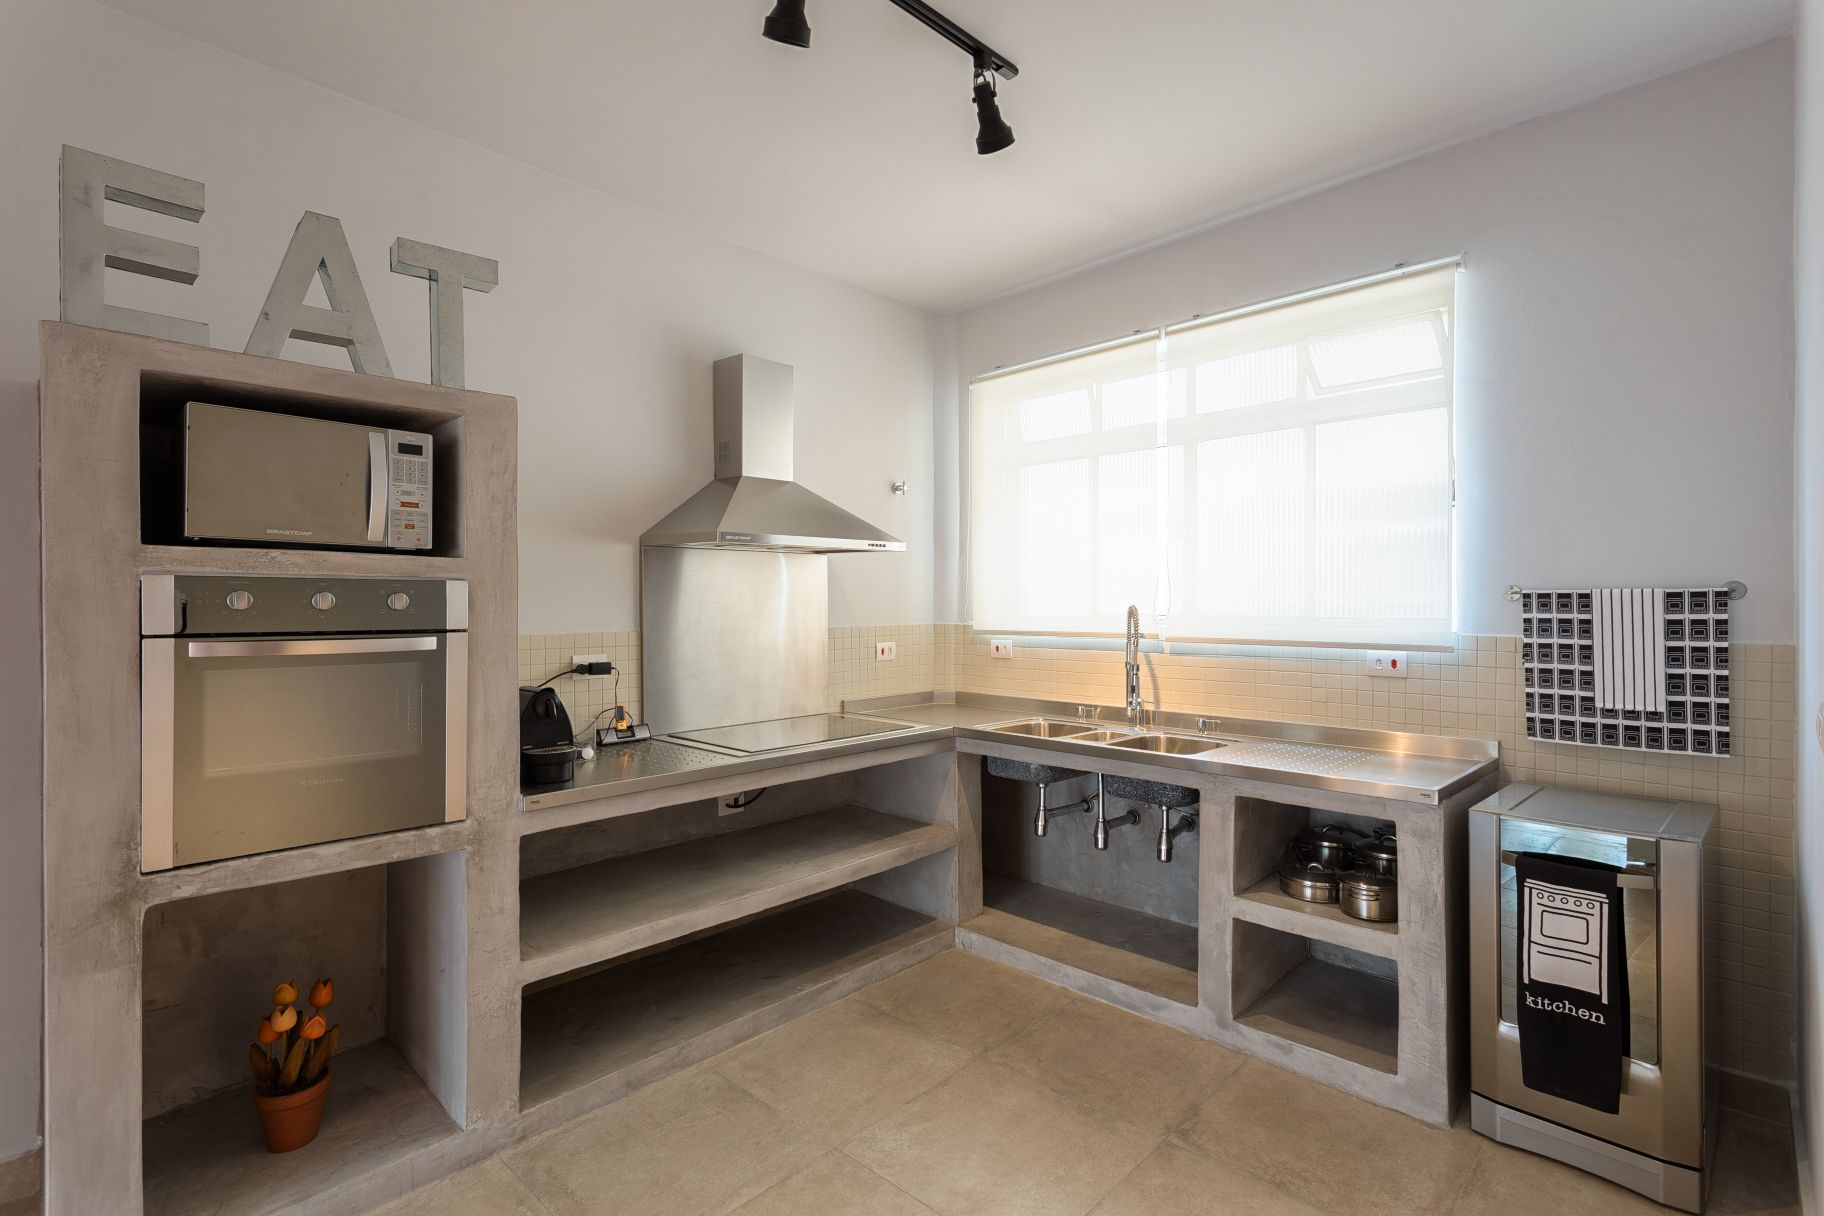 Planned Kitchen Made With Masonry And Burnt Cement Stainless